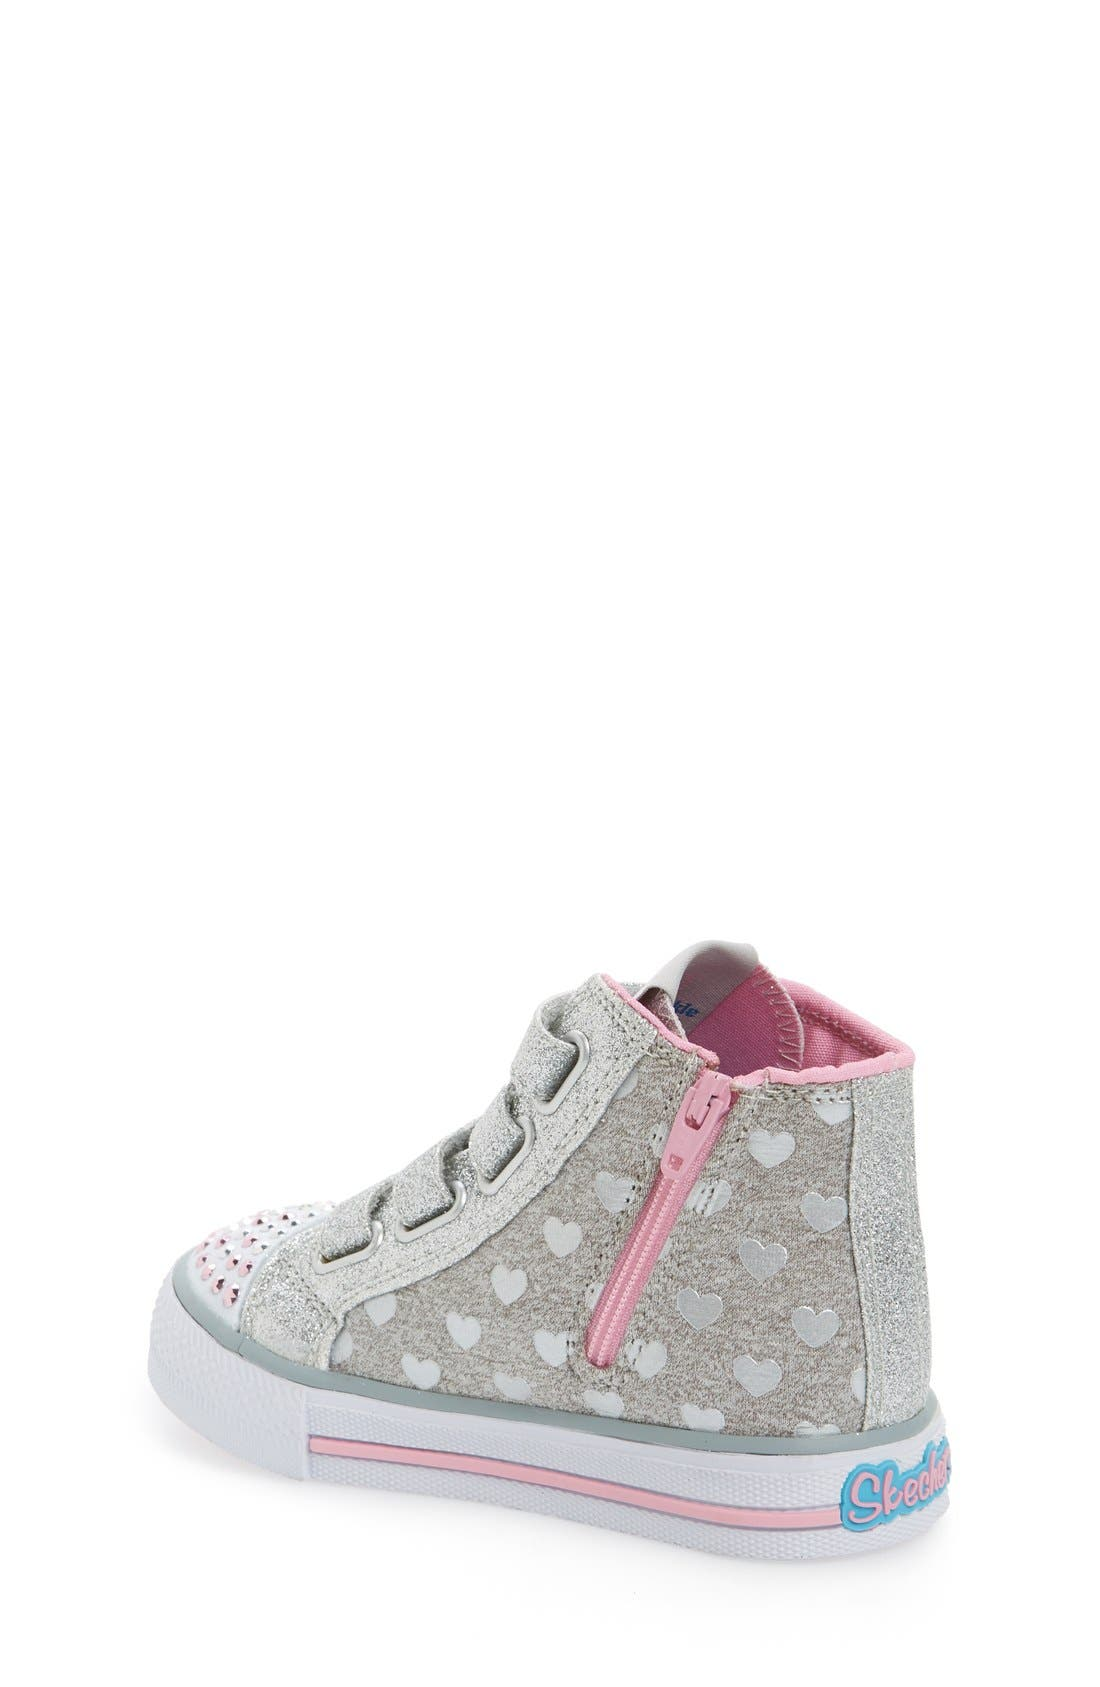 'Twinkle Toes - Shuffles' High Top Sneaker,                             Alternate thumbnail 2, color,                             596